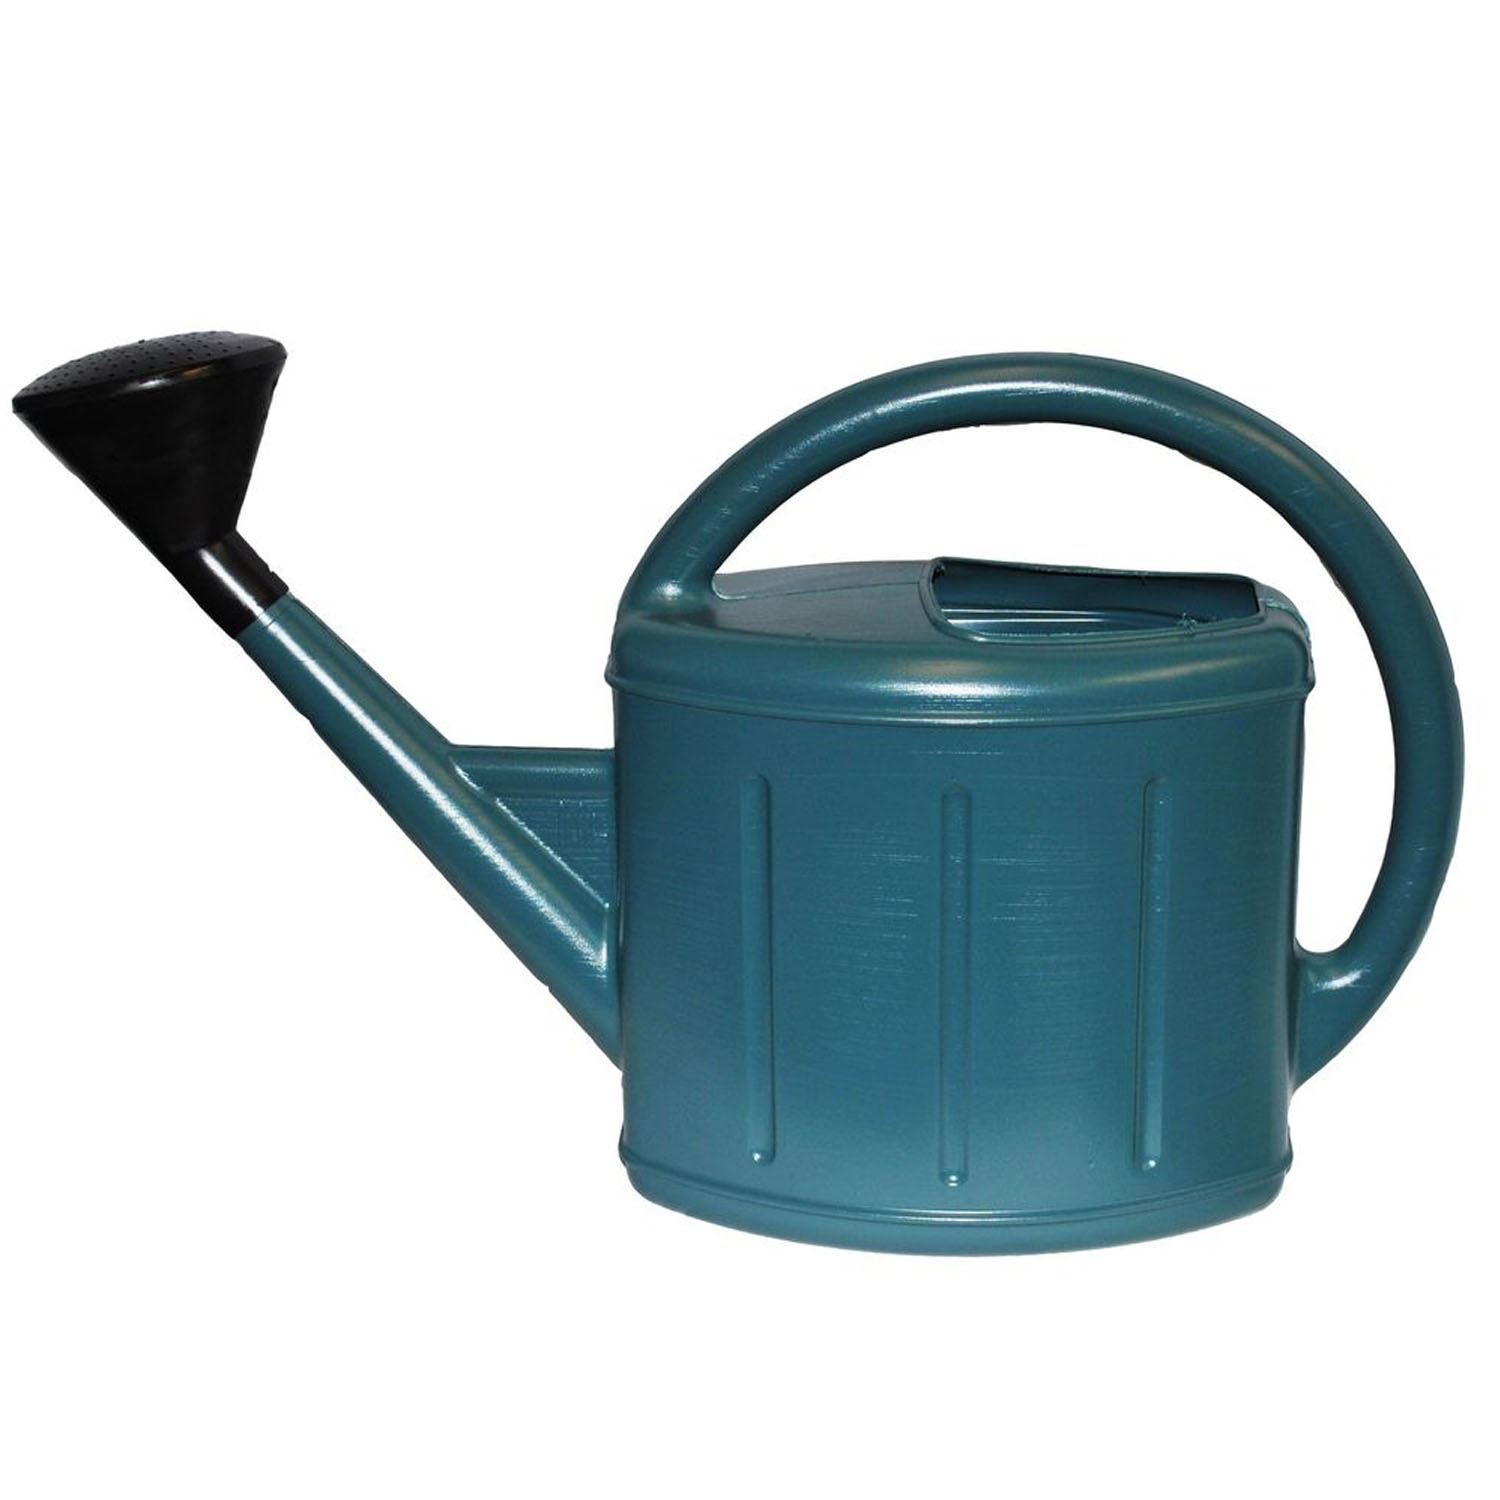 Plant Watering Cans Extra Large 11 Litre Watering Can Garden Water Vegetable